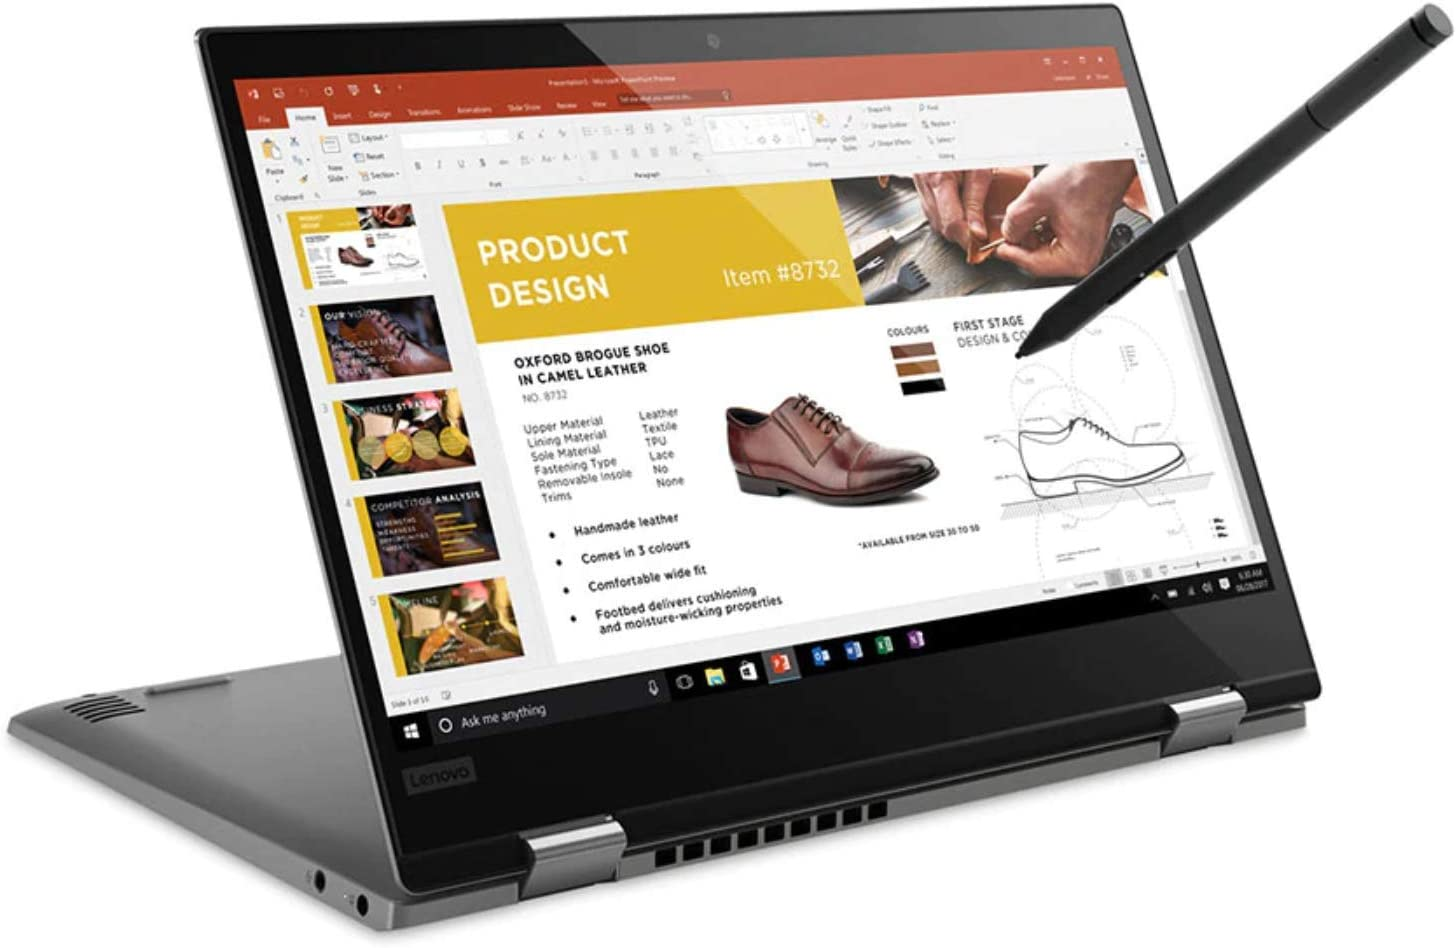 "2019 Lenovo Yoga 720-12IKB Multi-Touch Performance Intel Core i7-7500U 2.70GHz up to 3.5GHz, 8GB DDR4, 512GB SSD 12.5"" FHD(1920x1080) Touchscreen, Fingerprint Reader, Win 10"